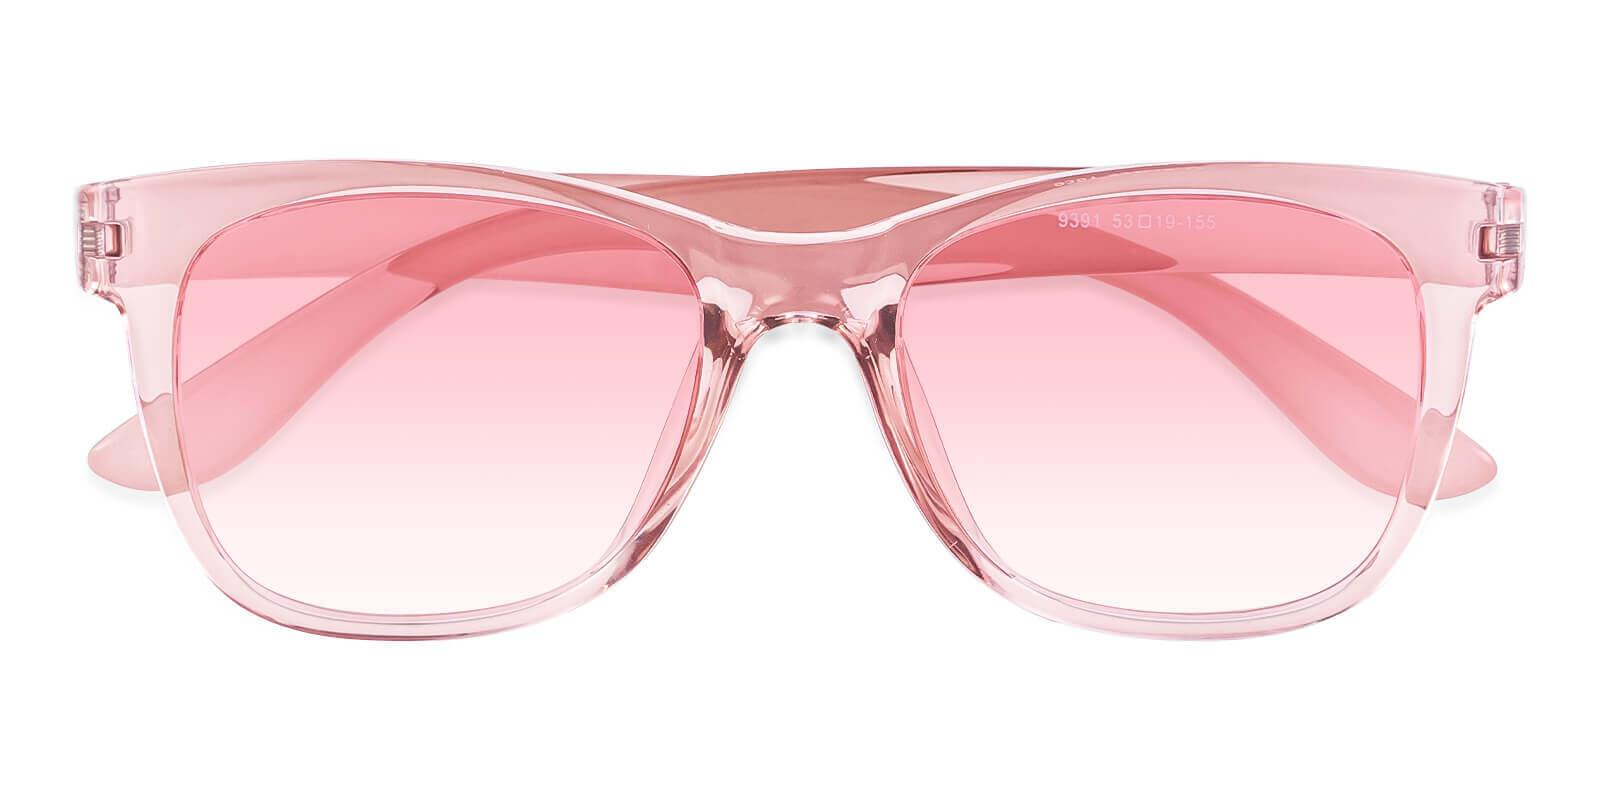 Symmetry Pink TR Sunglasses , UniversalBridgeFit Frames from ABBE Glasses